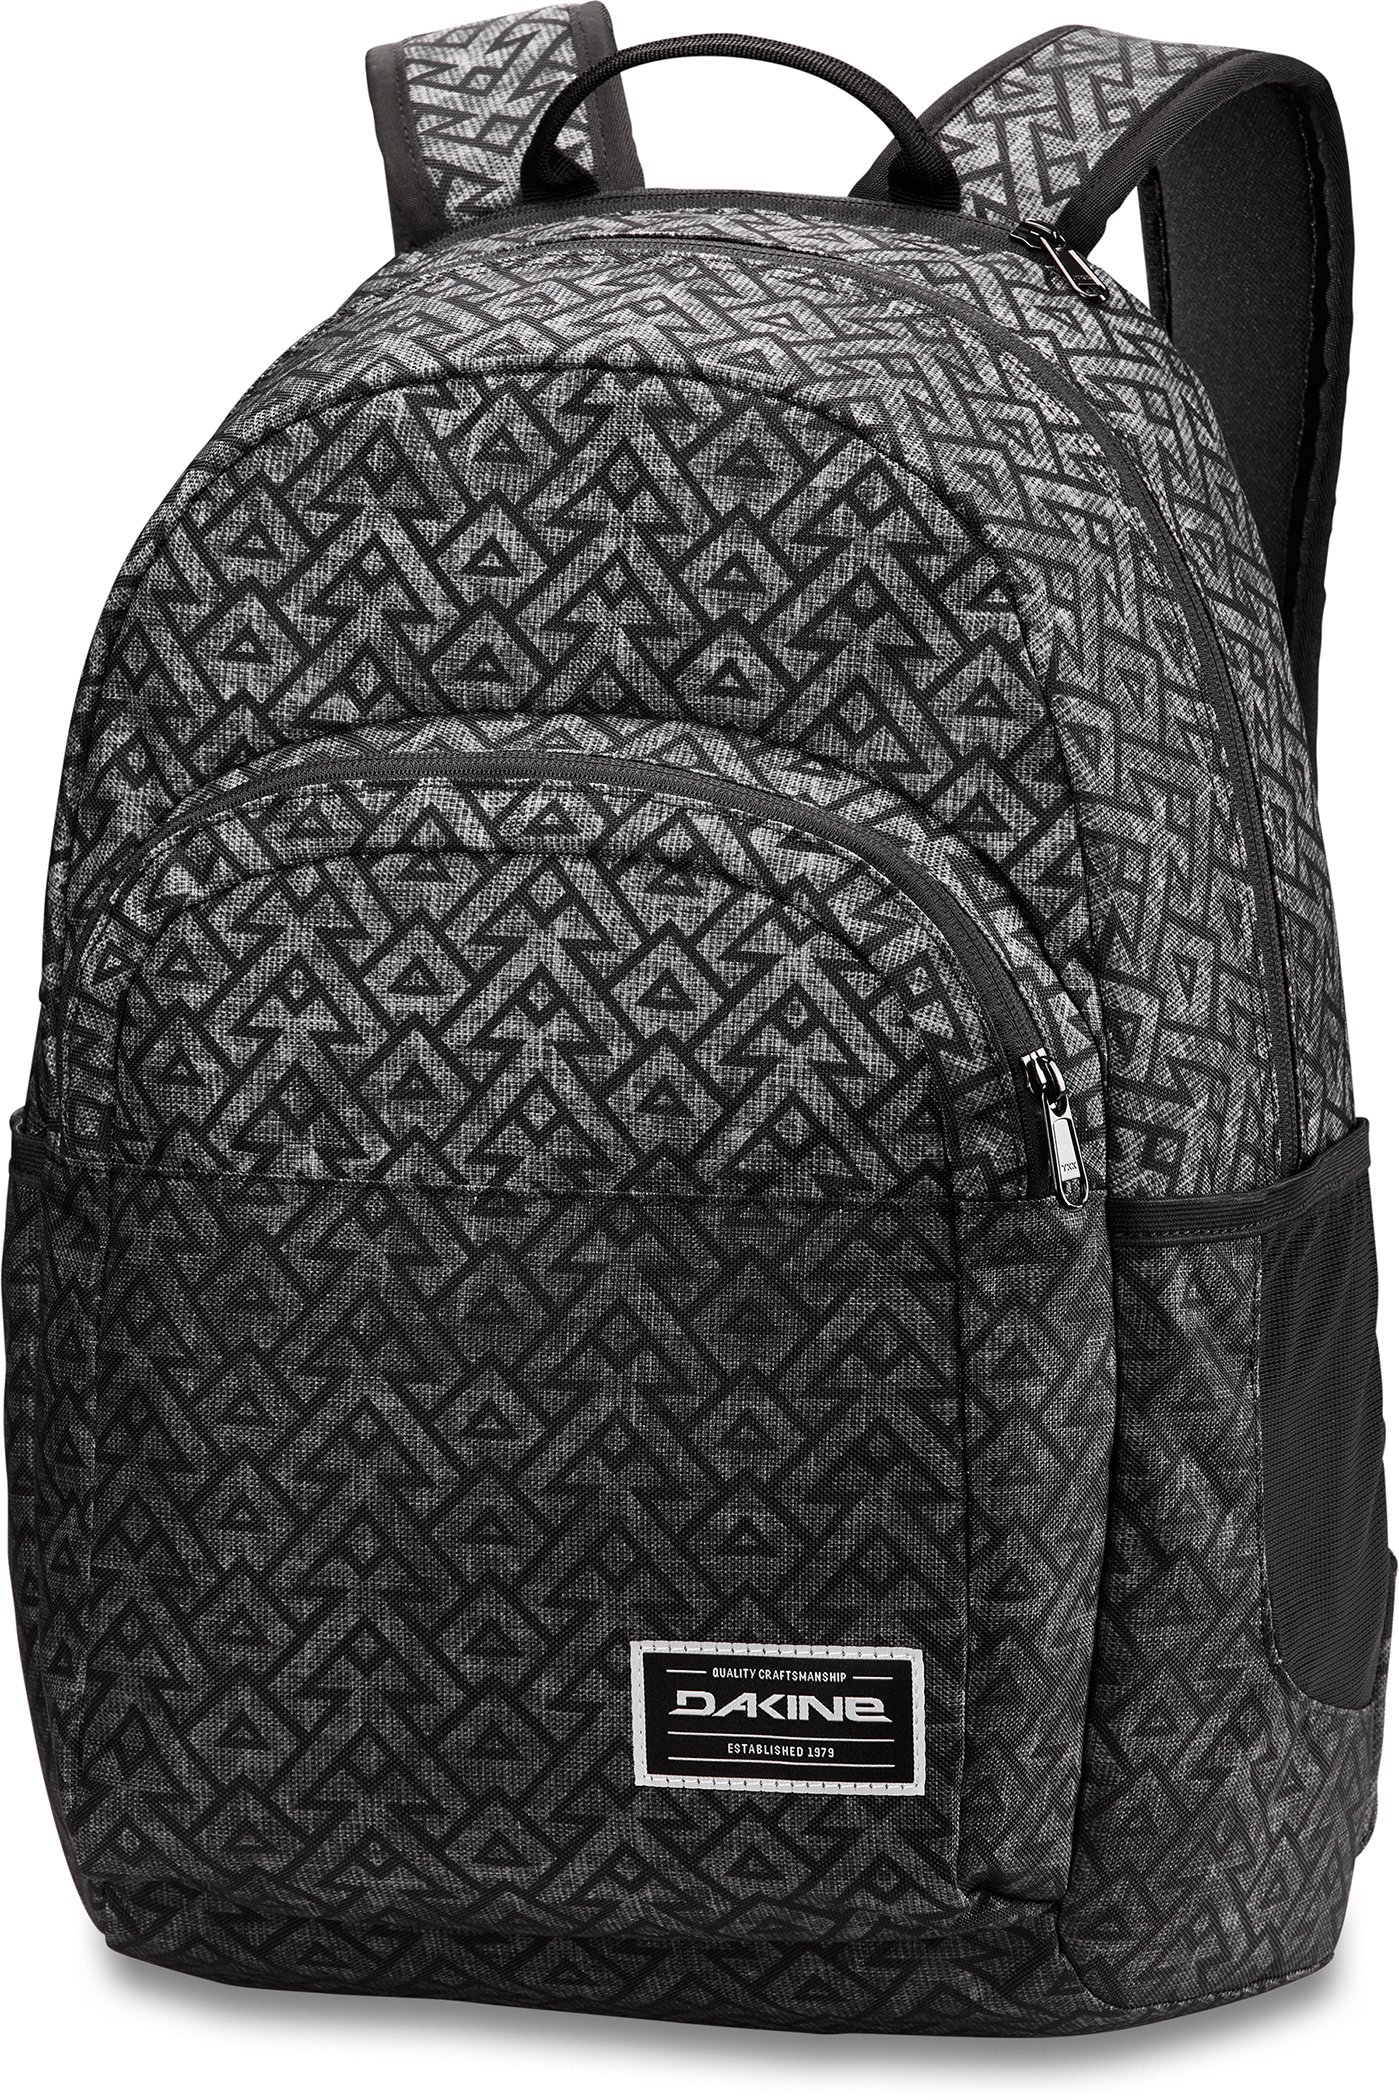 Dakine Ohana Backpack, 26l, Stacked